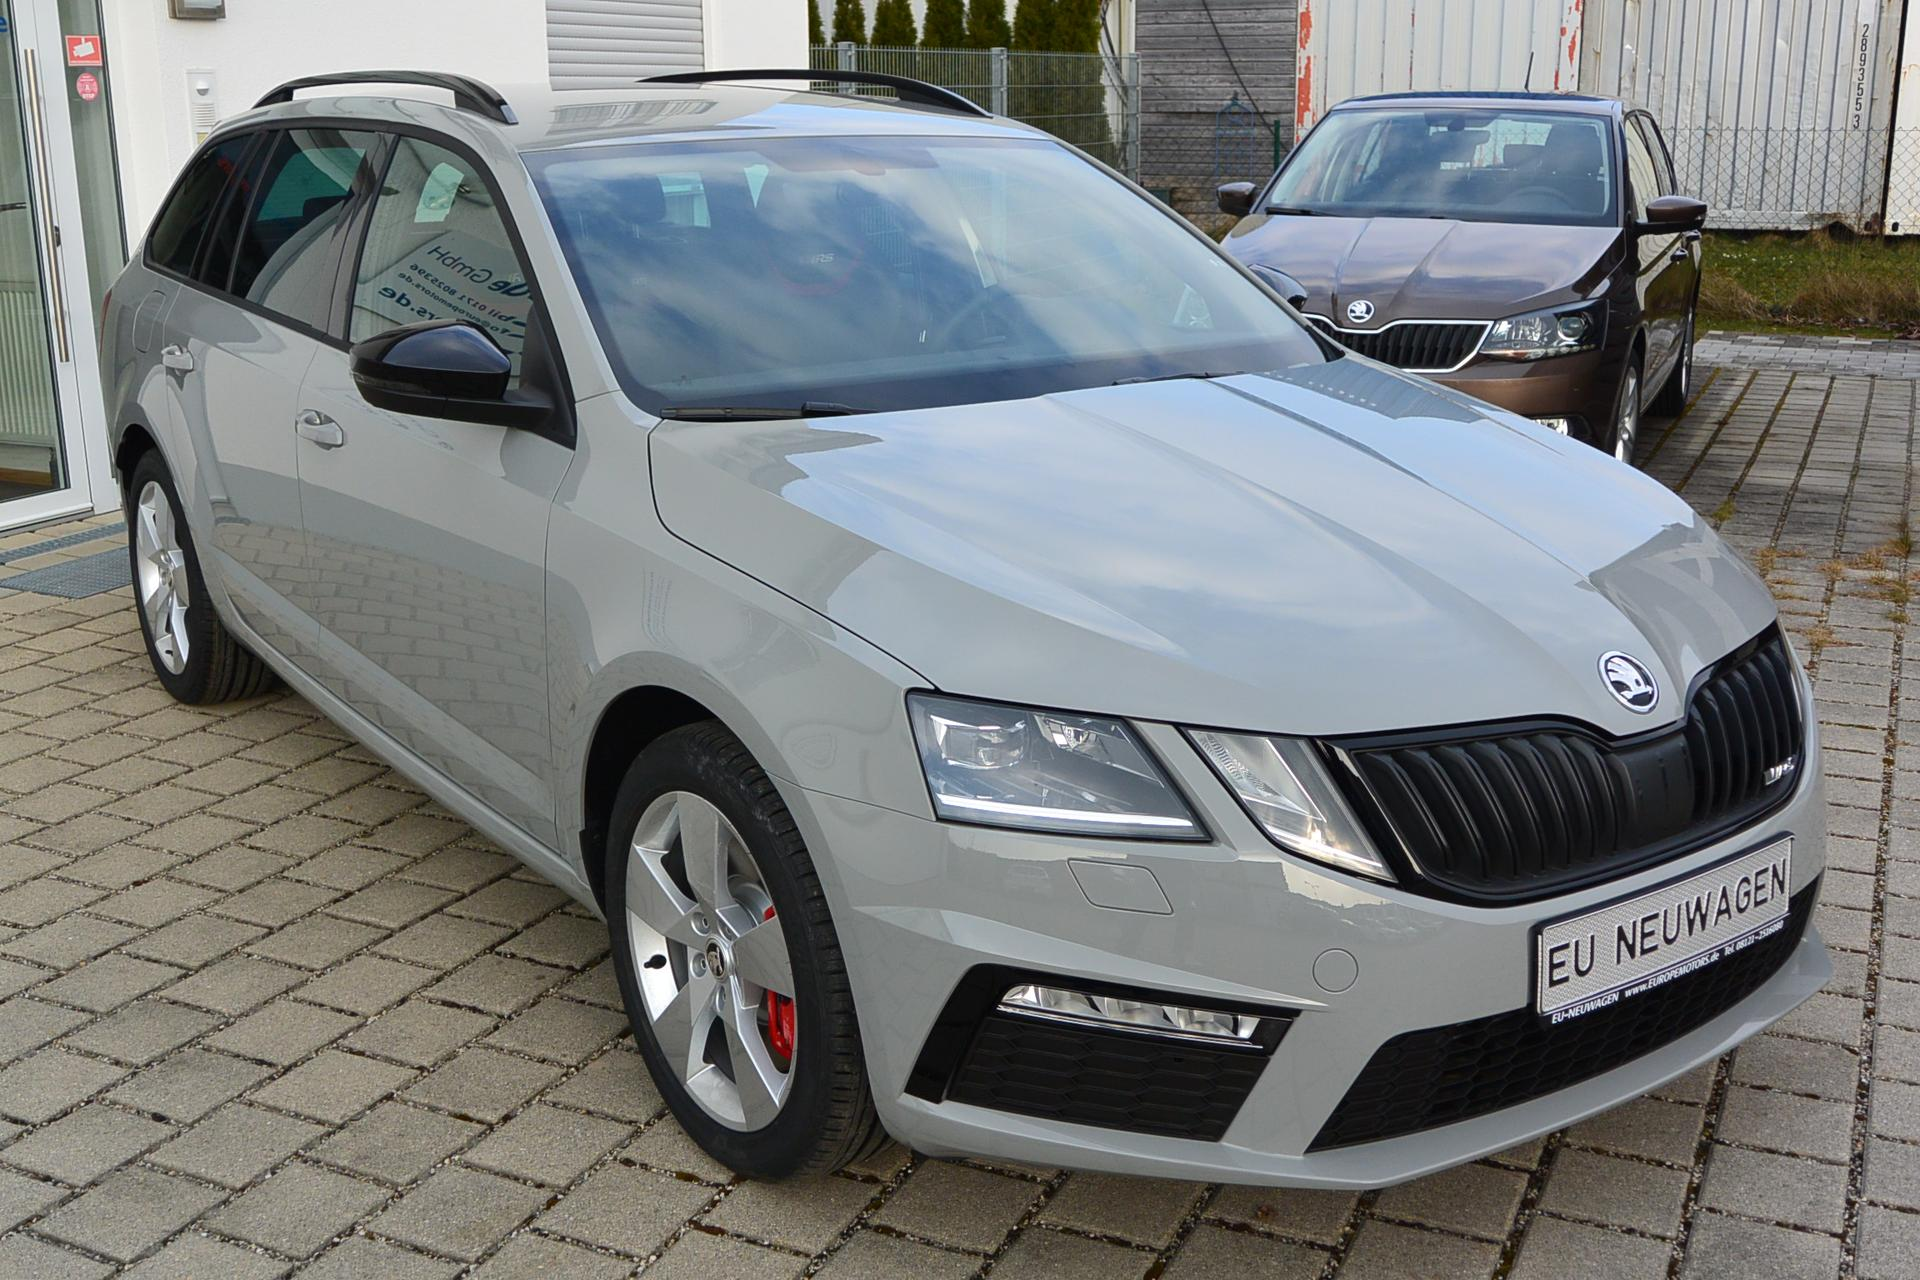 skoda octavia rs combi 2 0 tsi dsg 180 kw 245 ps automatik. Black Bedroom Furniture Sets. Home Design Ideas